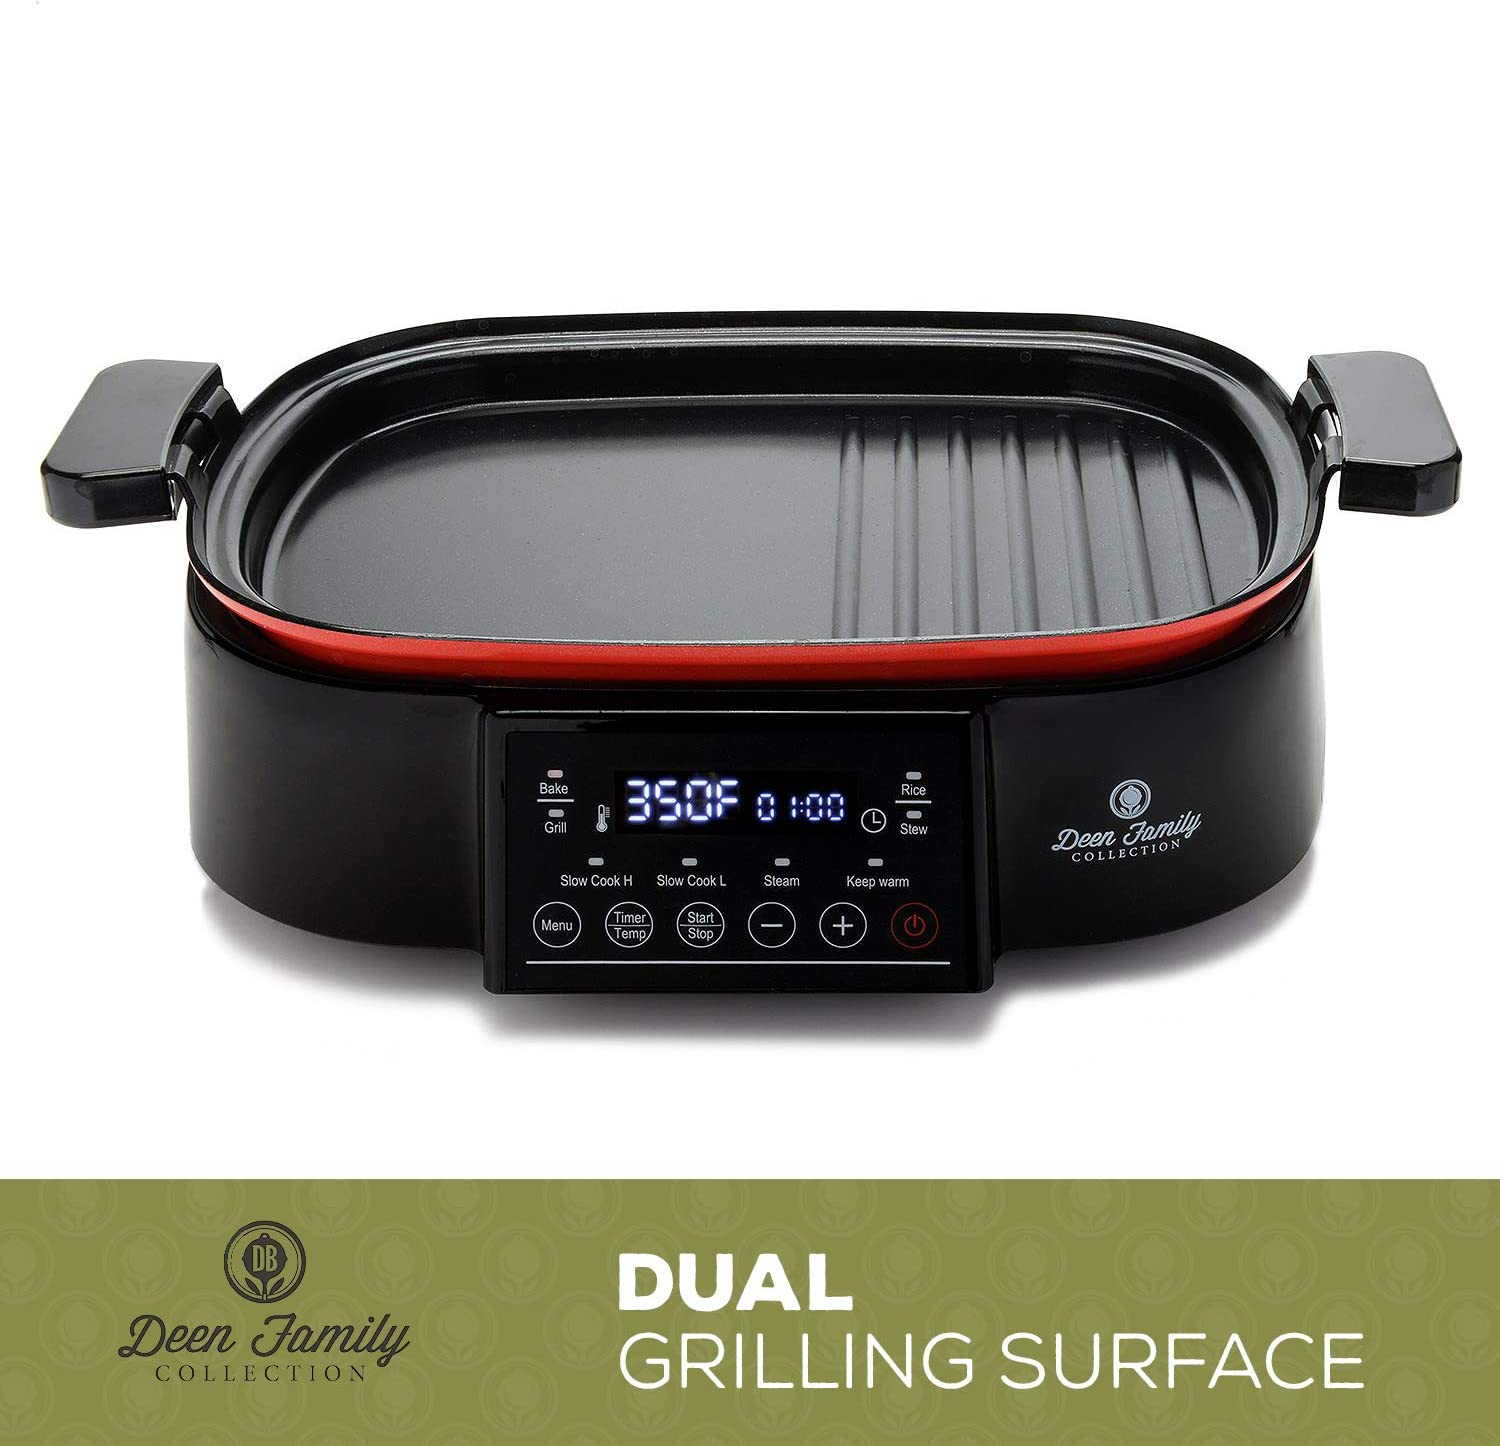 Deen Family 2-in-1 6QT 1250 Watt Multi Cooker and Grill with Glass Lid